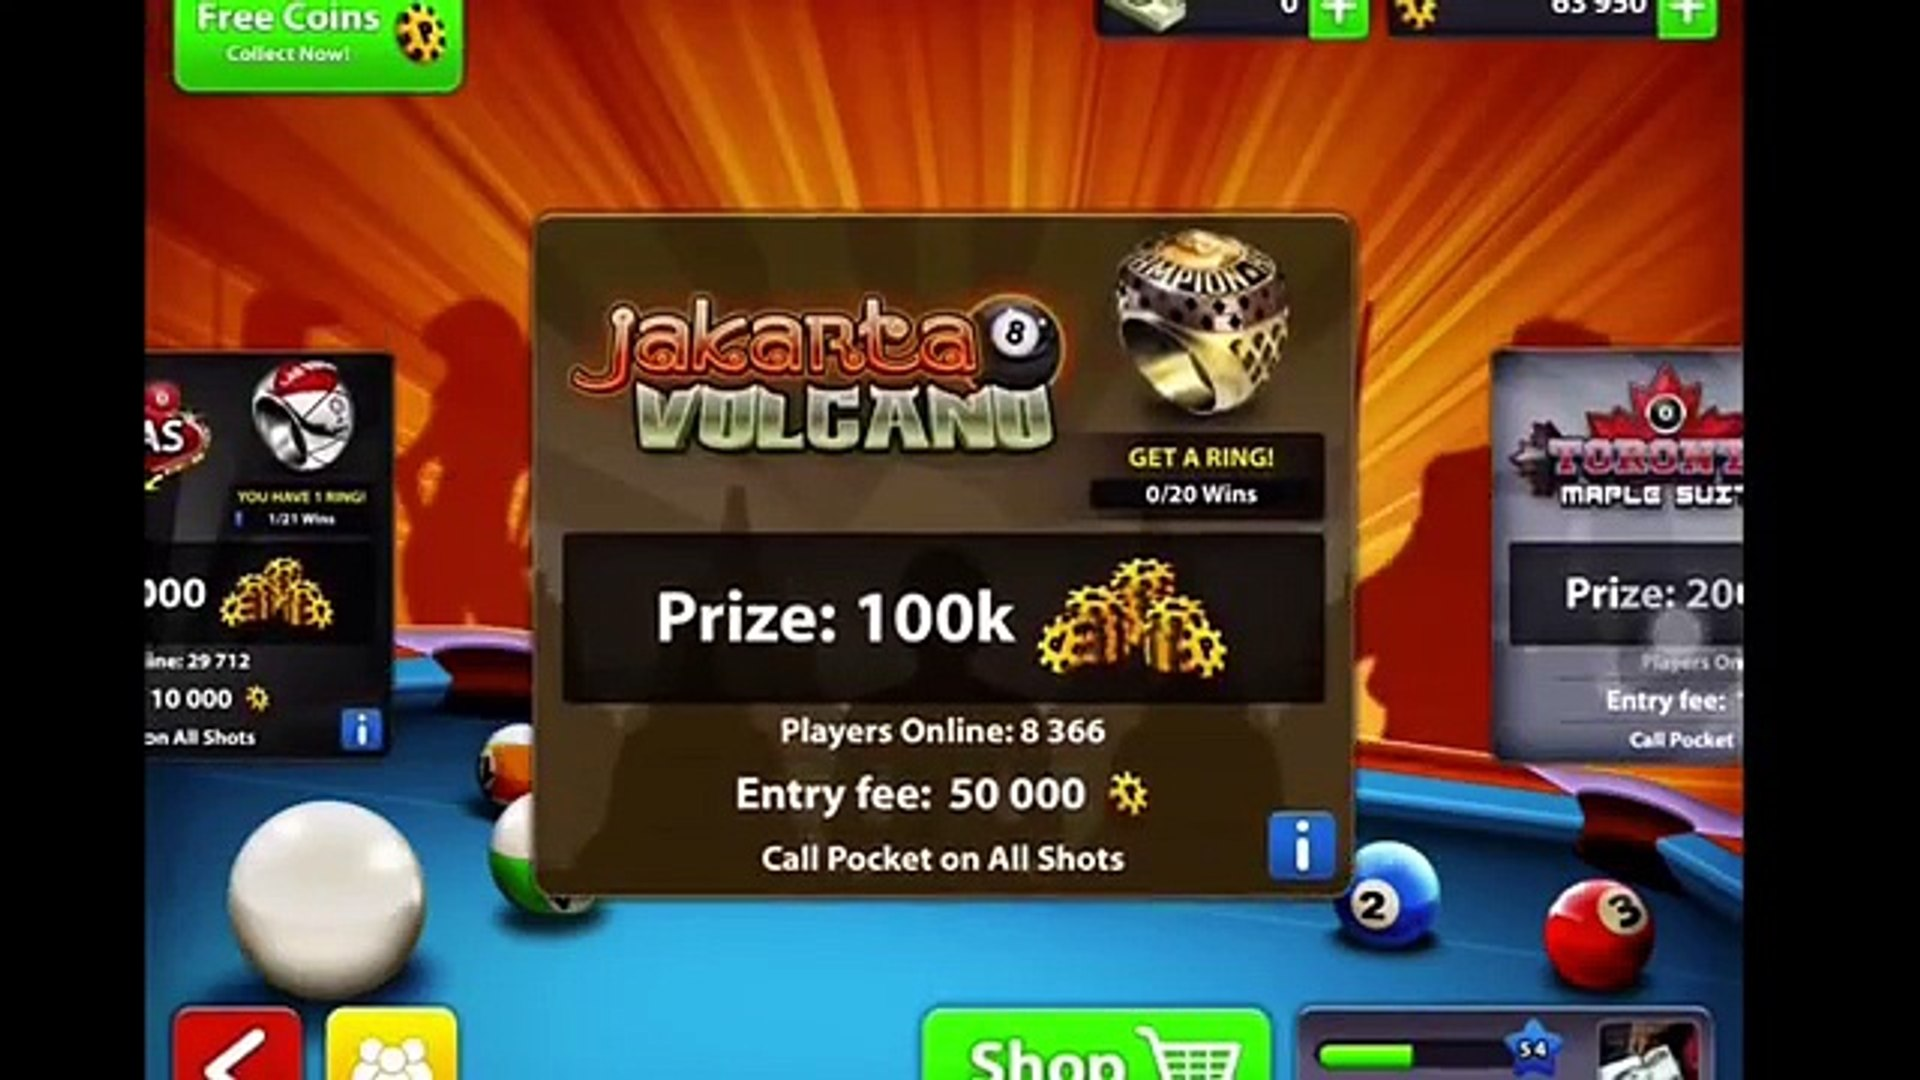 8 Ball Pool Generator App 8 ball pool working 2017 - unlimited line - no jailbreak